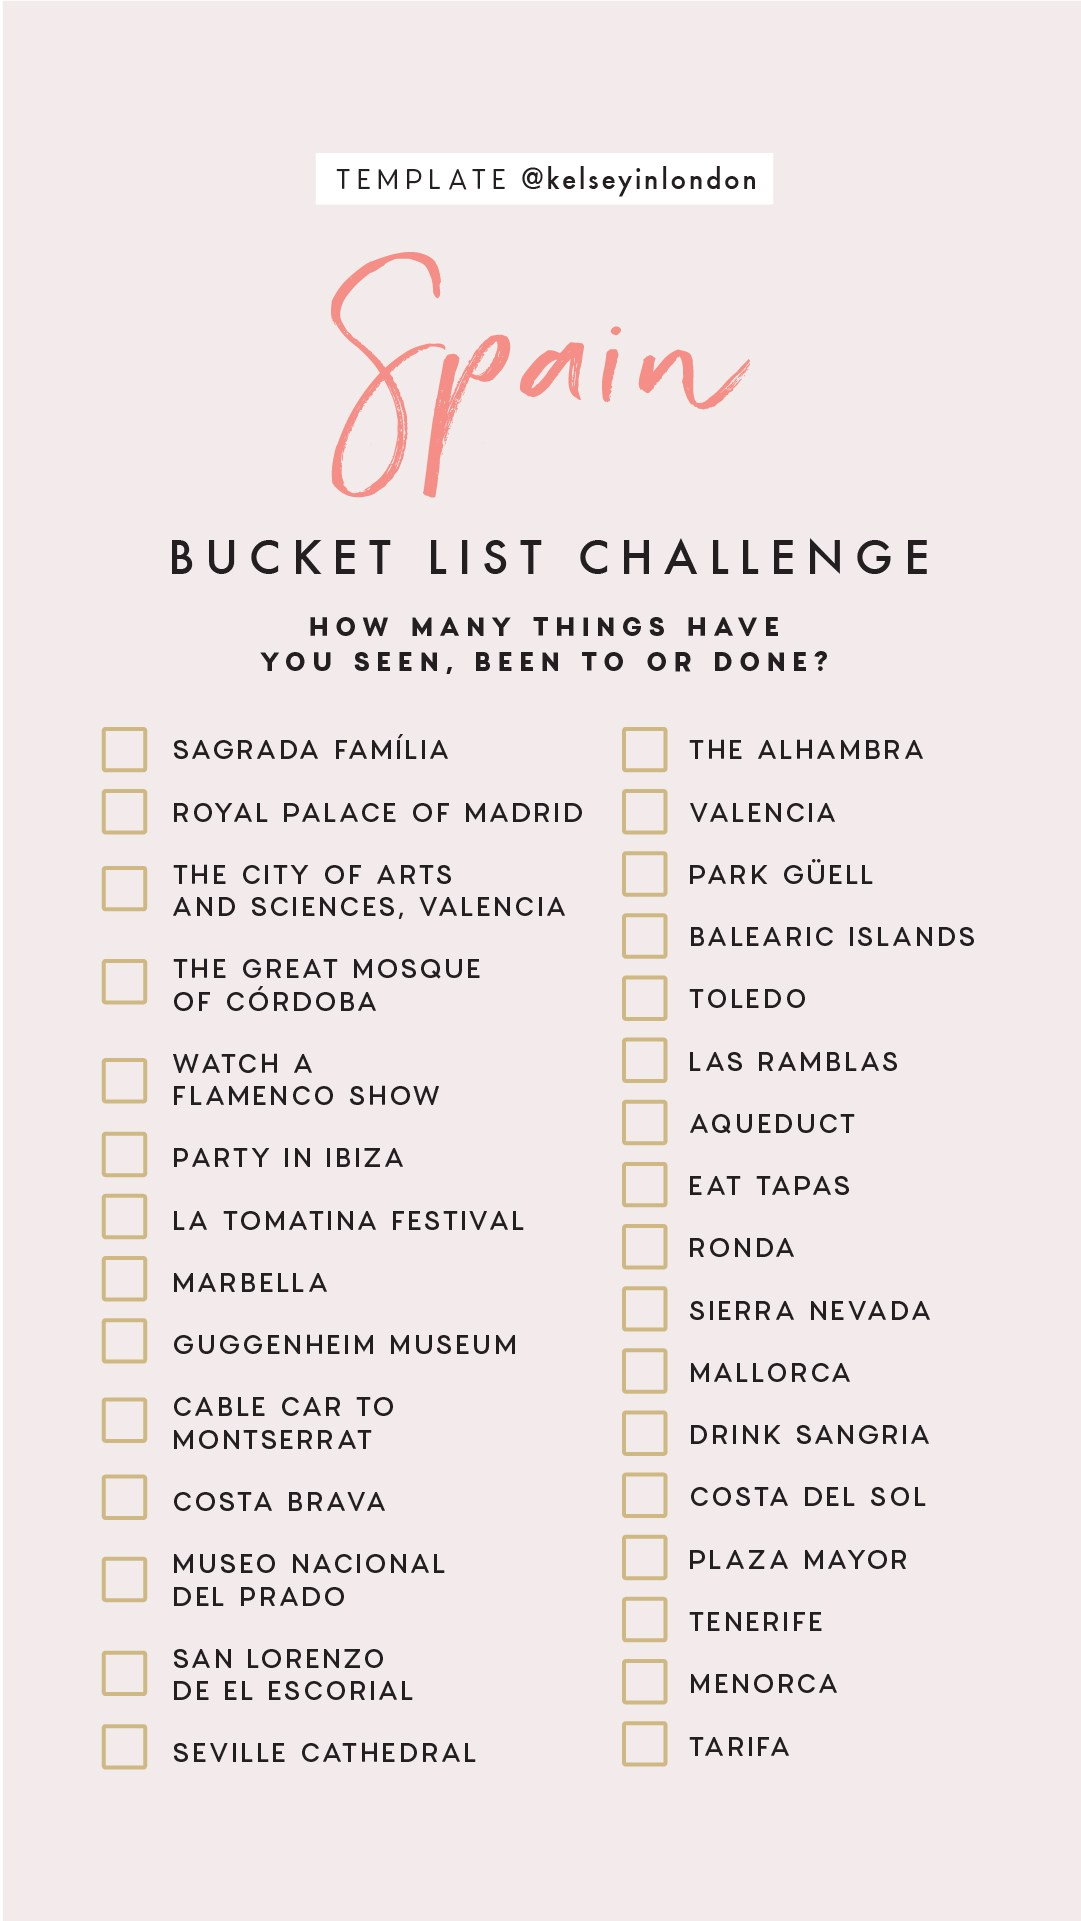 Top things to do in Spain Bucket list Instagram Story Template kelseyinlondon Kelsey Heinrichs What to do in Spain Where to go in Spain top places in Spain